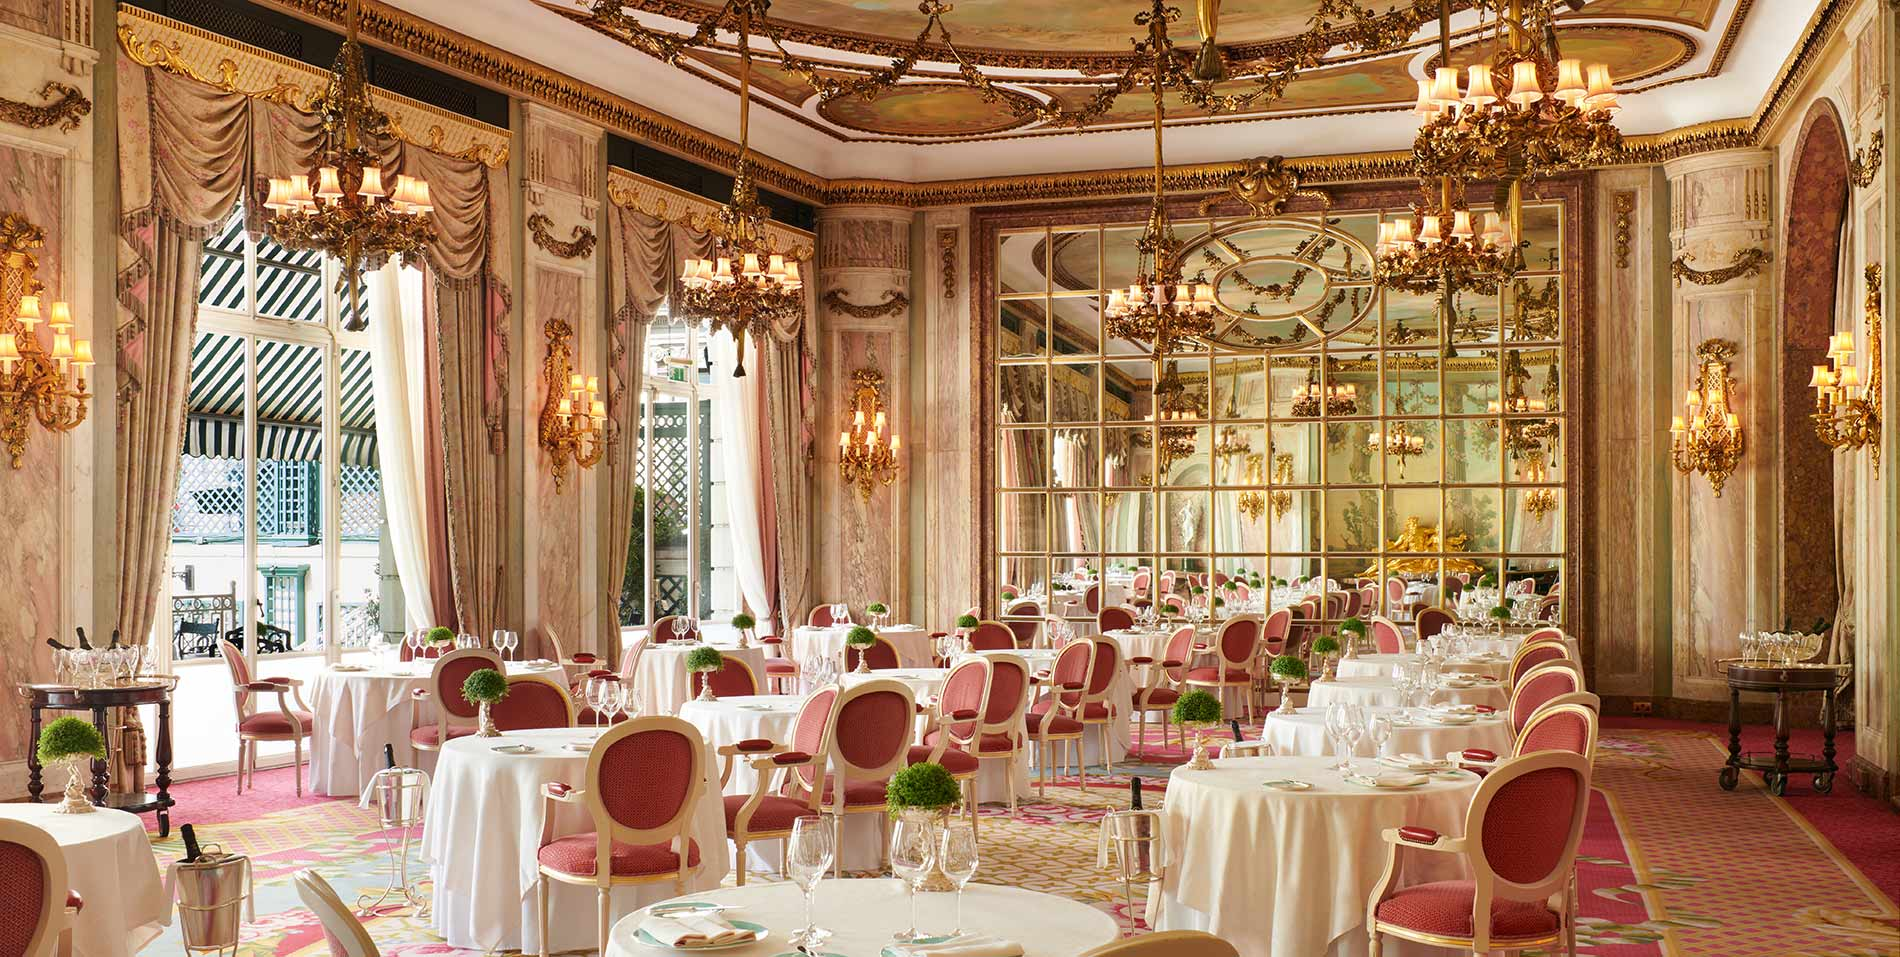 Dinner at 'The Ritz', London